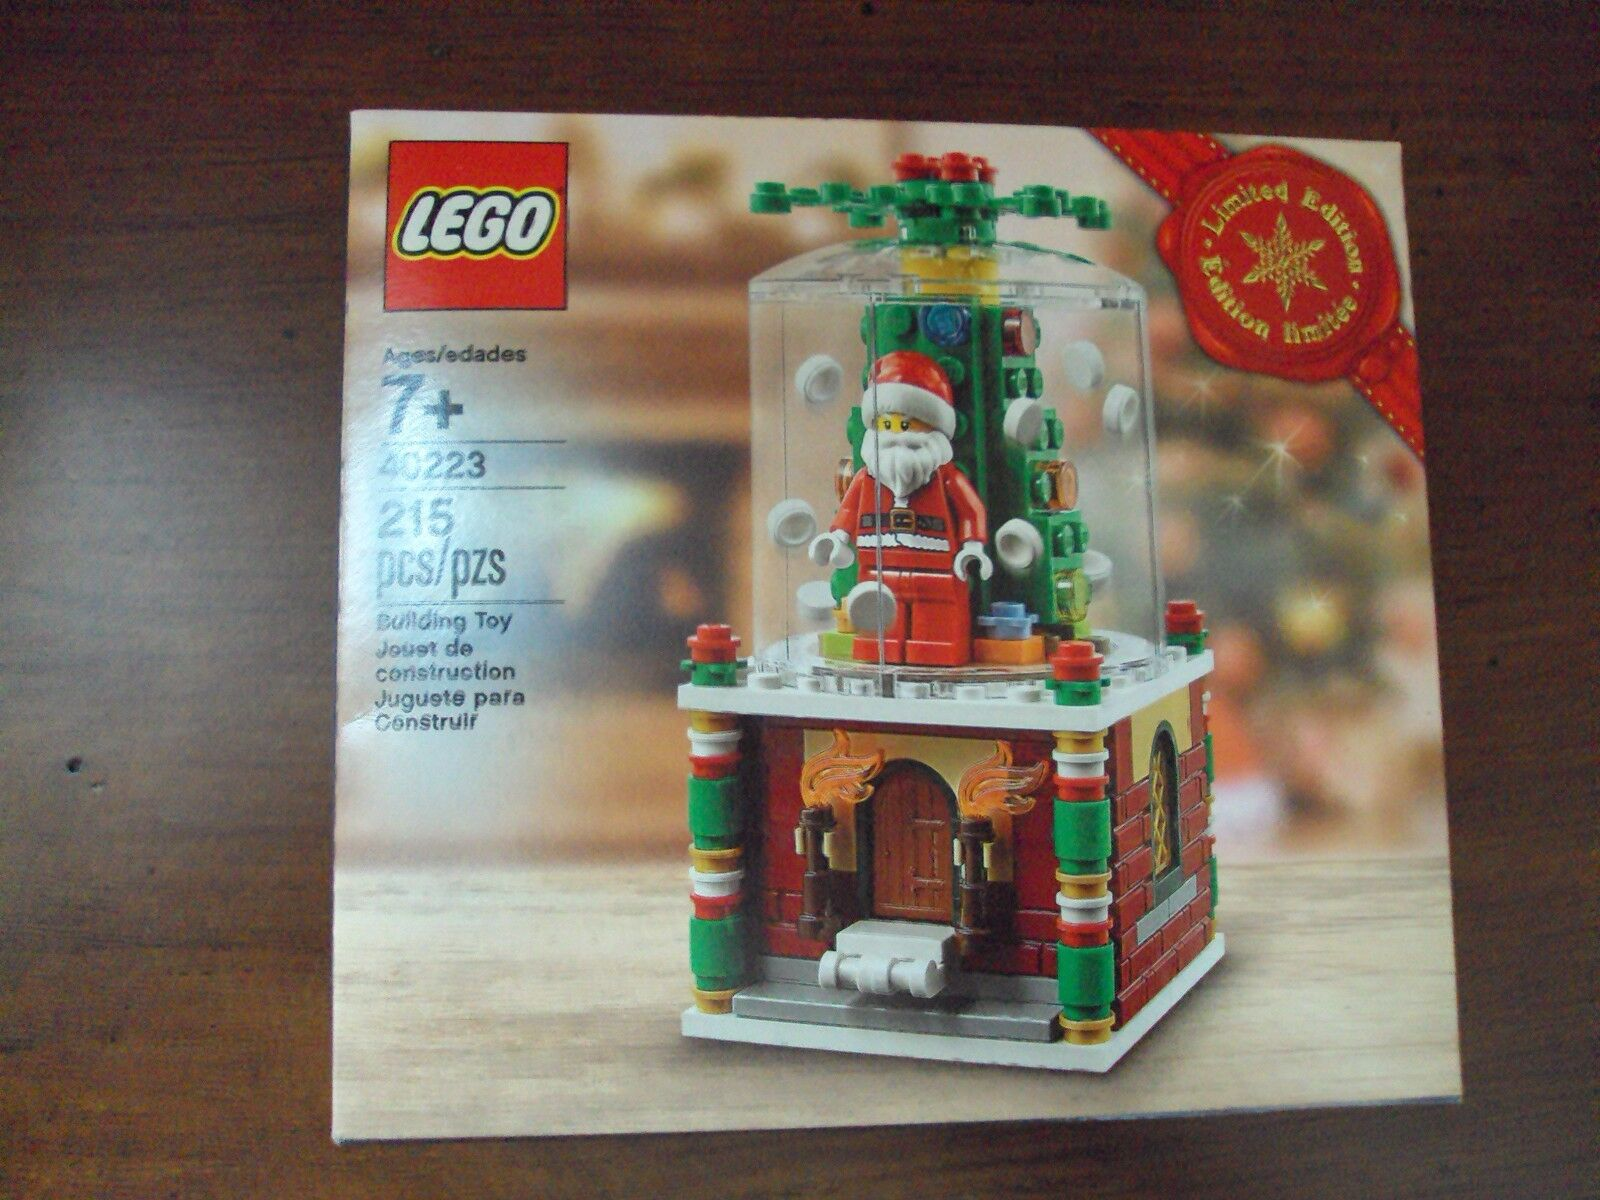 Lego Christmas Promo  Santa Snowglobe 40223  New Sealed Set MIB 2016 Limited